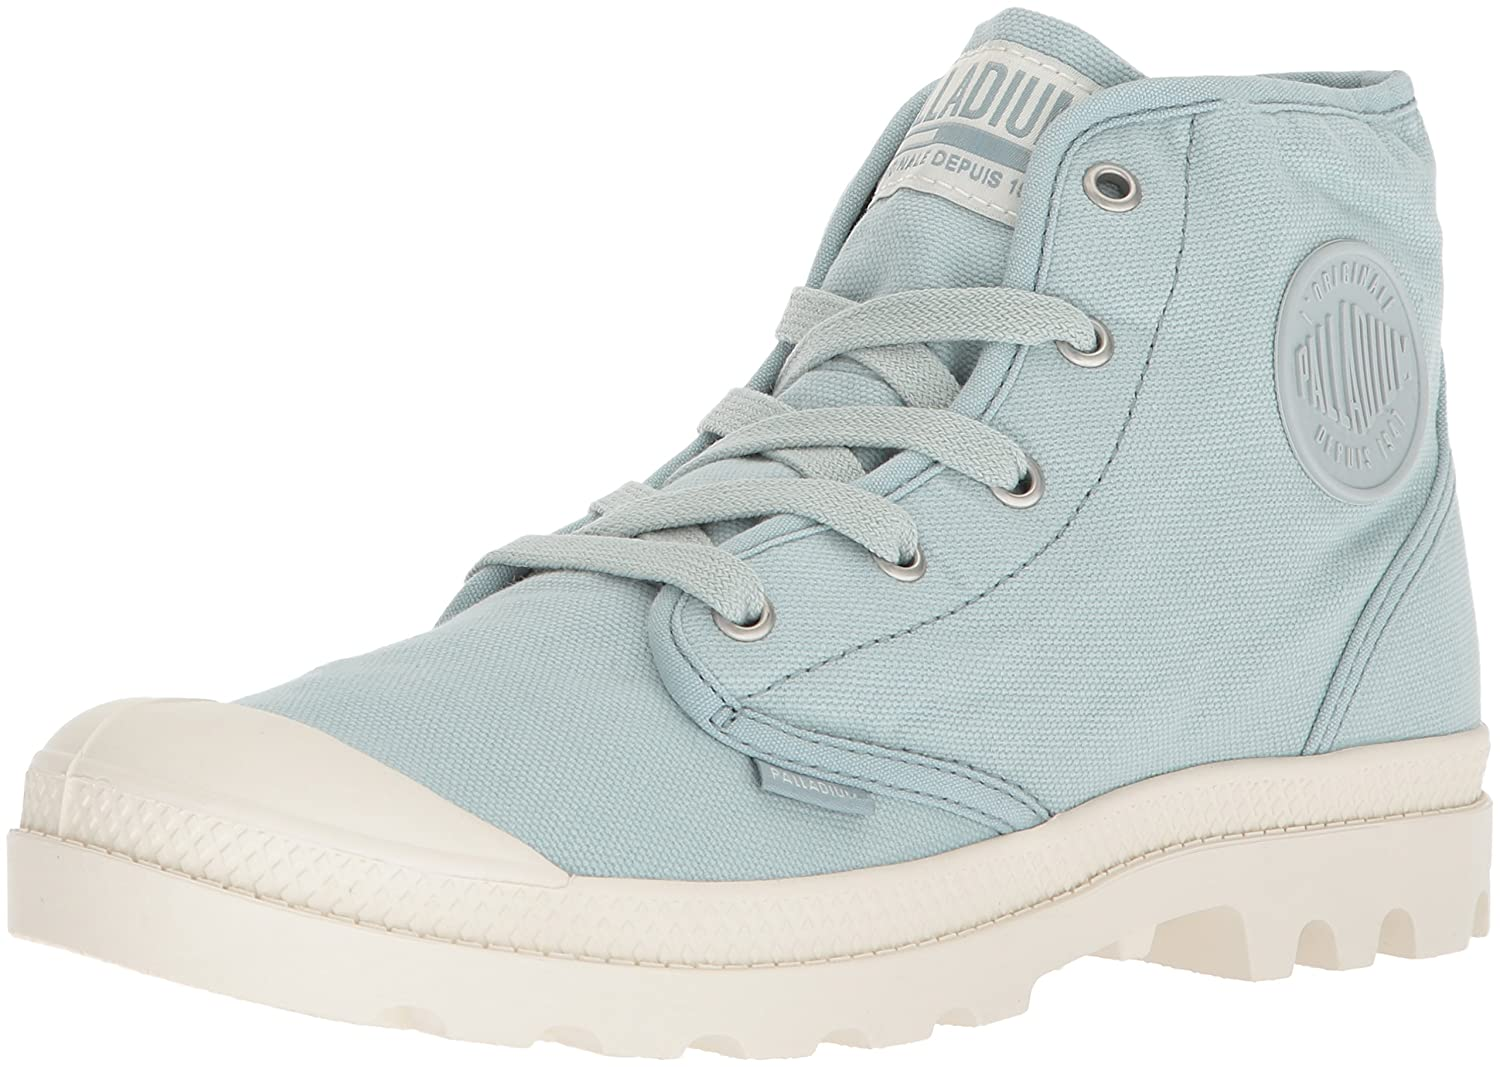 Palladium Women's Pampa Hi Ankle Boot B074B3ZQDS 9 B(M) US|Grey